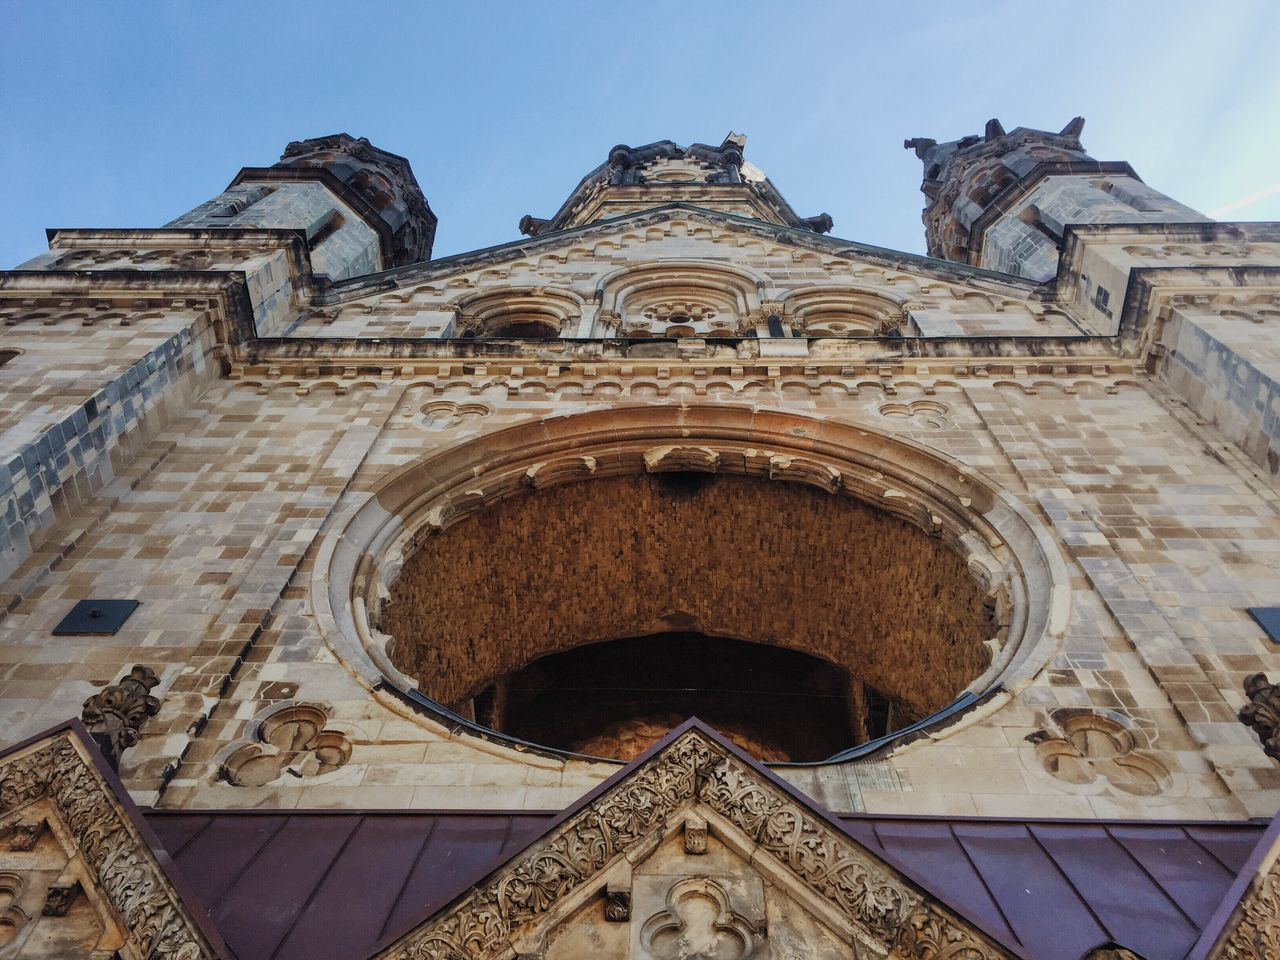 Looking Up Looking Up Can Be So Rewarding Architecture Architecture_collection Architectural Detail Window Frame Architecturelovers Architectural Feature Gedächtniskirche Ruined Building Church Religious Architecture Religious Views Music Brings Us Together